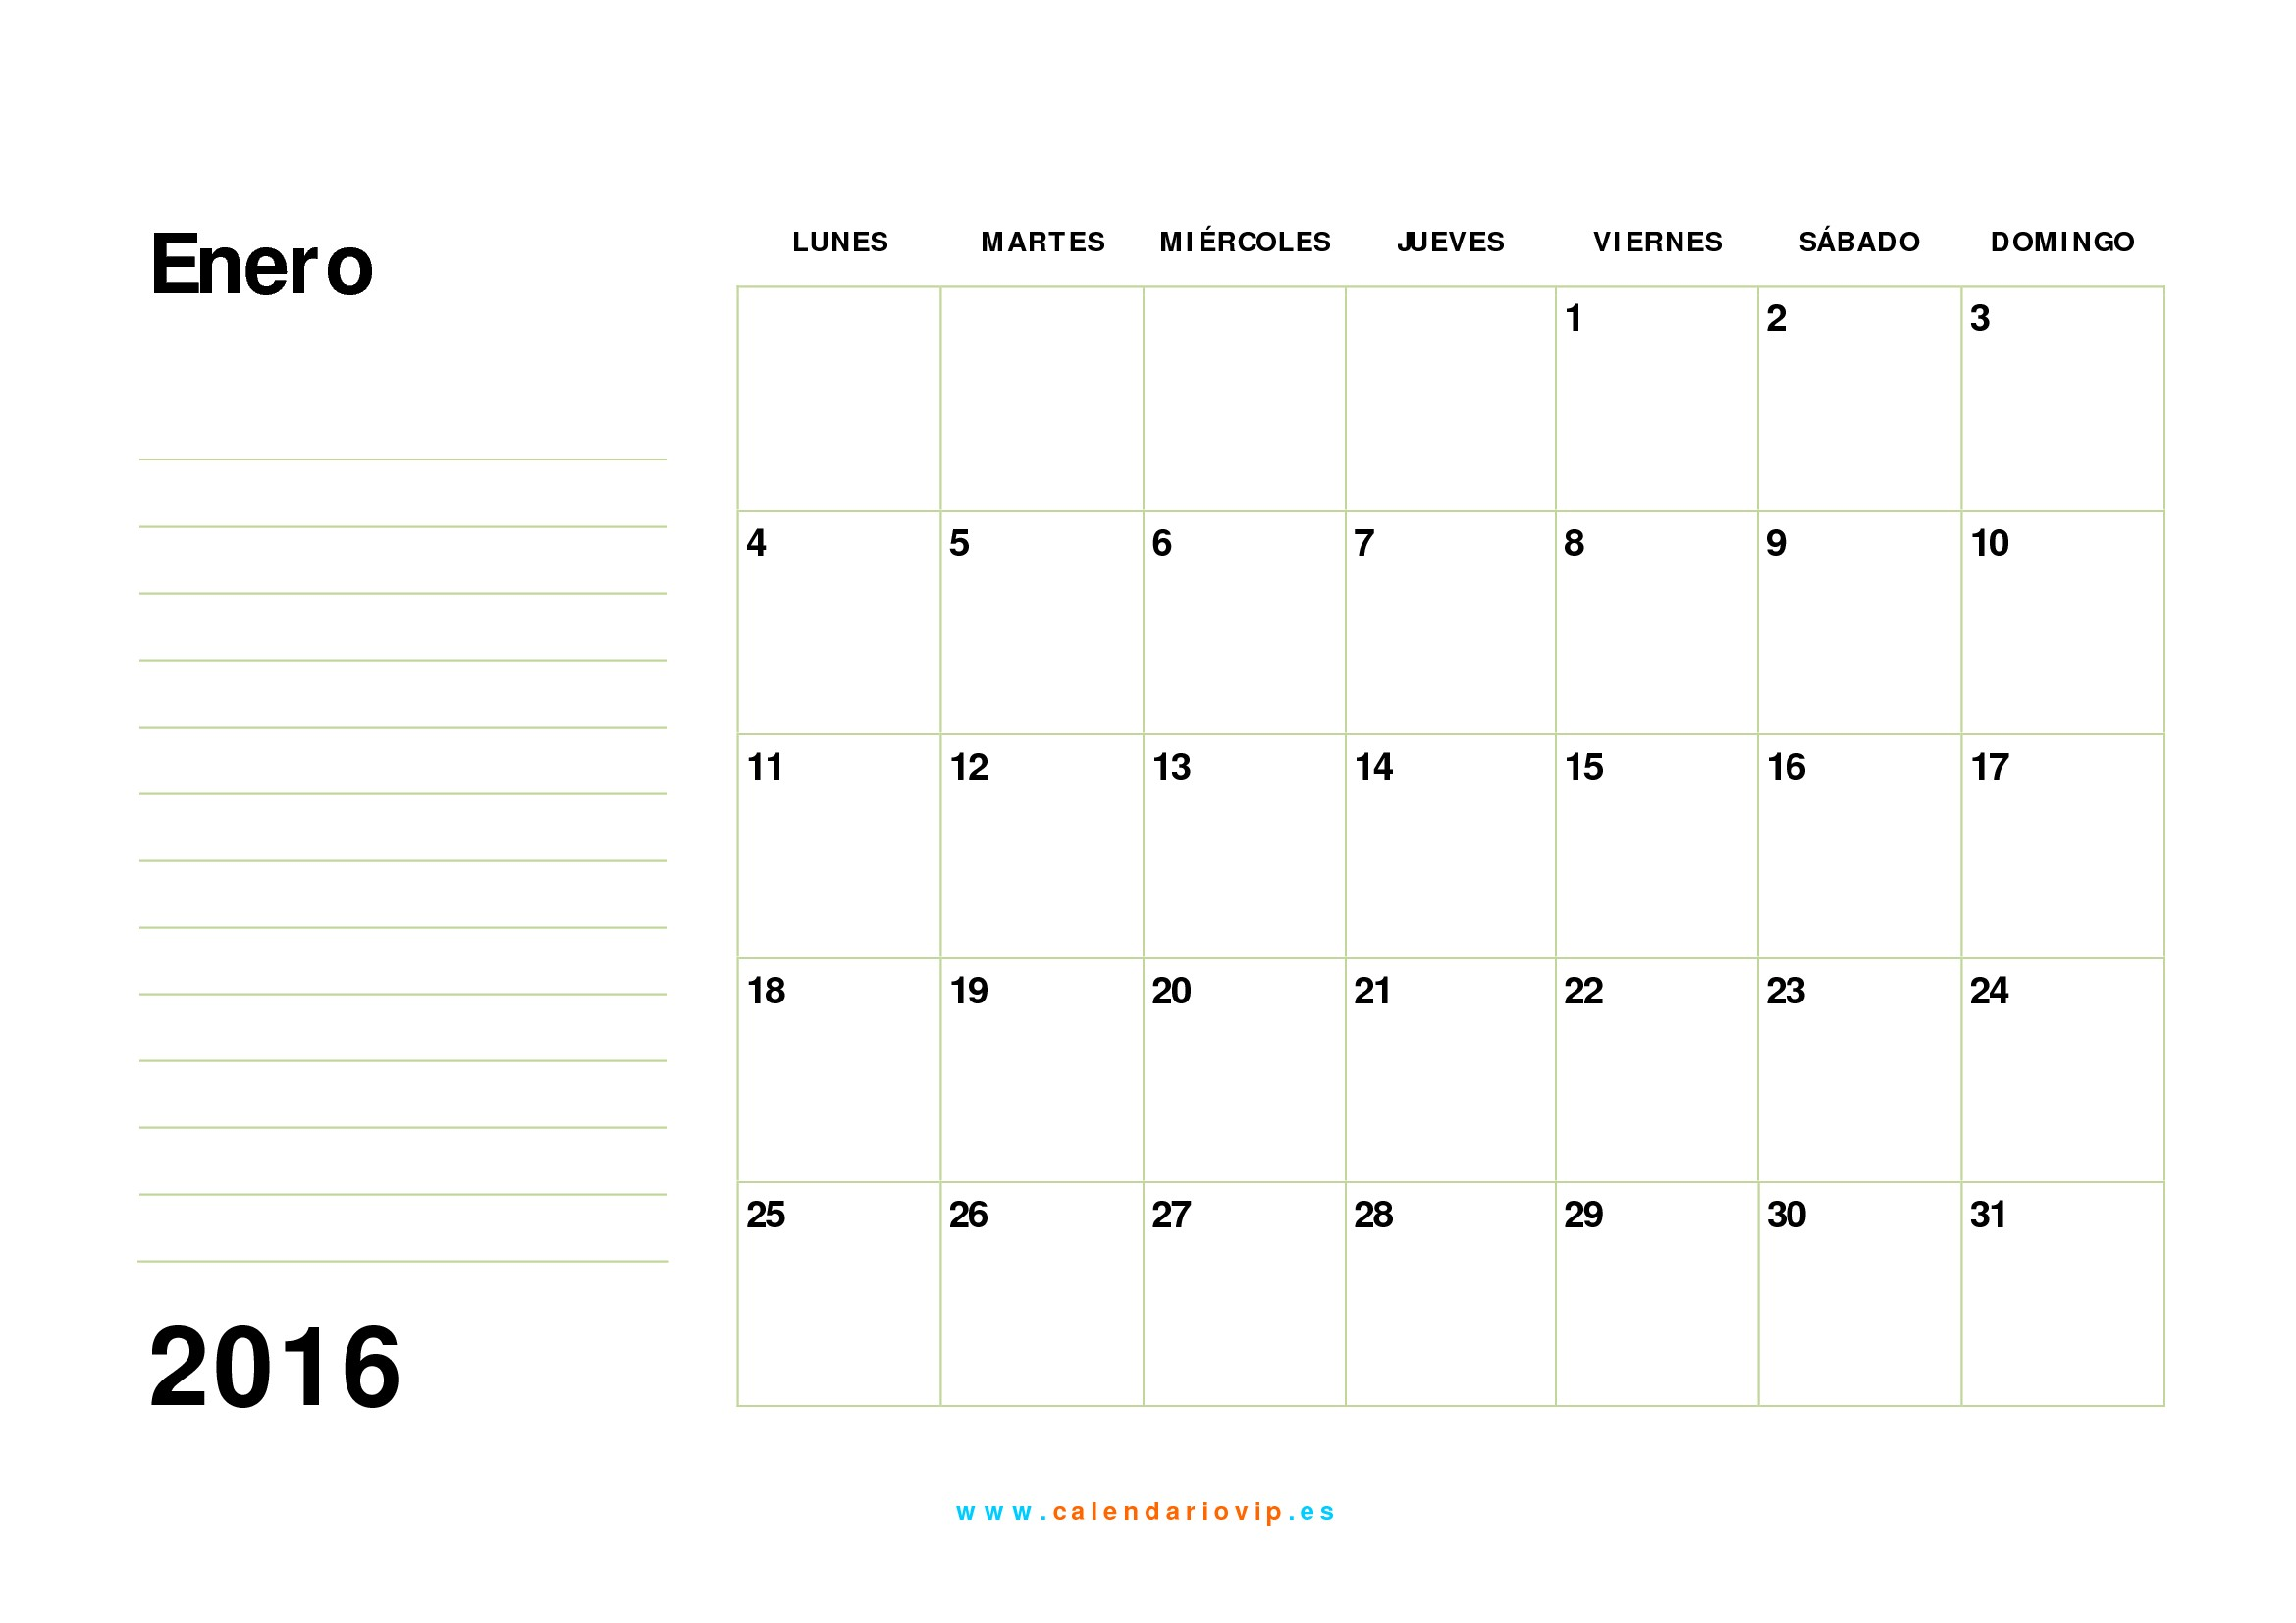 Calendario Semanal Para Imprimir 2017 Más Recientemente Liberado List Of Synonyms and Antonyms Of the Word Agenda 2016 Enero Of Calendario Semanal Para Imprimir 2017 Más Arriba-a-fecha Calendario En Ingles Para Nios Amazing Descarga Nuestra Ficha